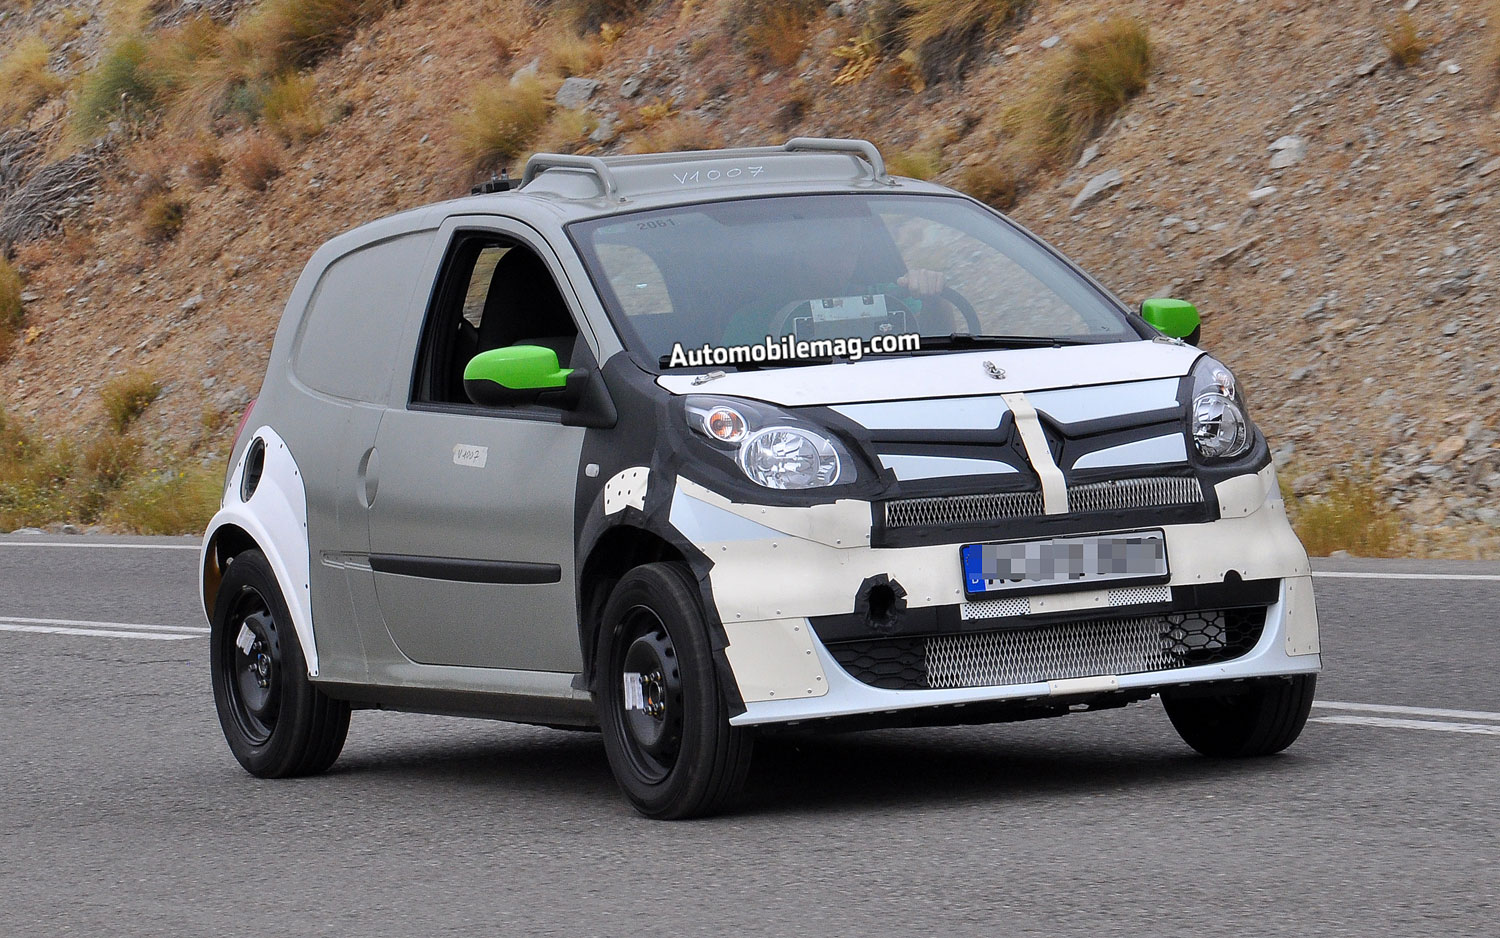 Caught Smart Forfour Prototype Shows Off Extra Set Of Doors